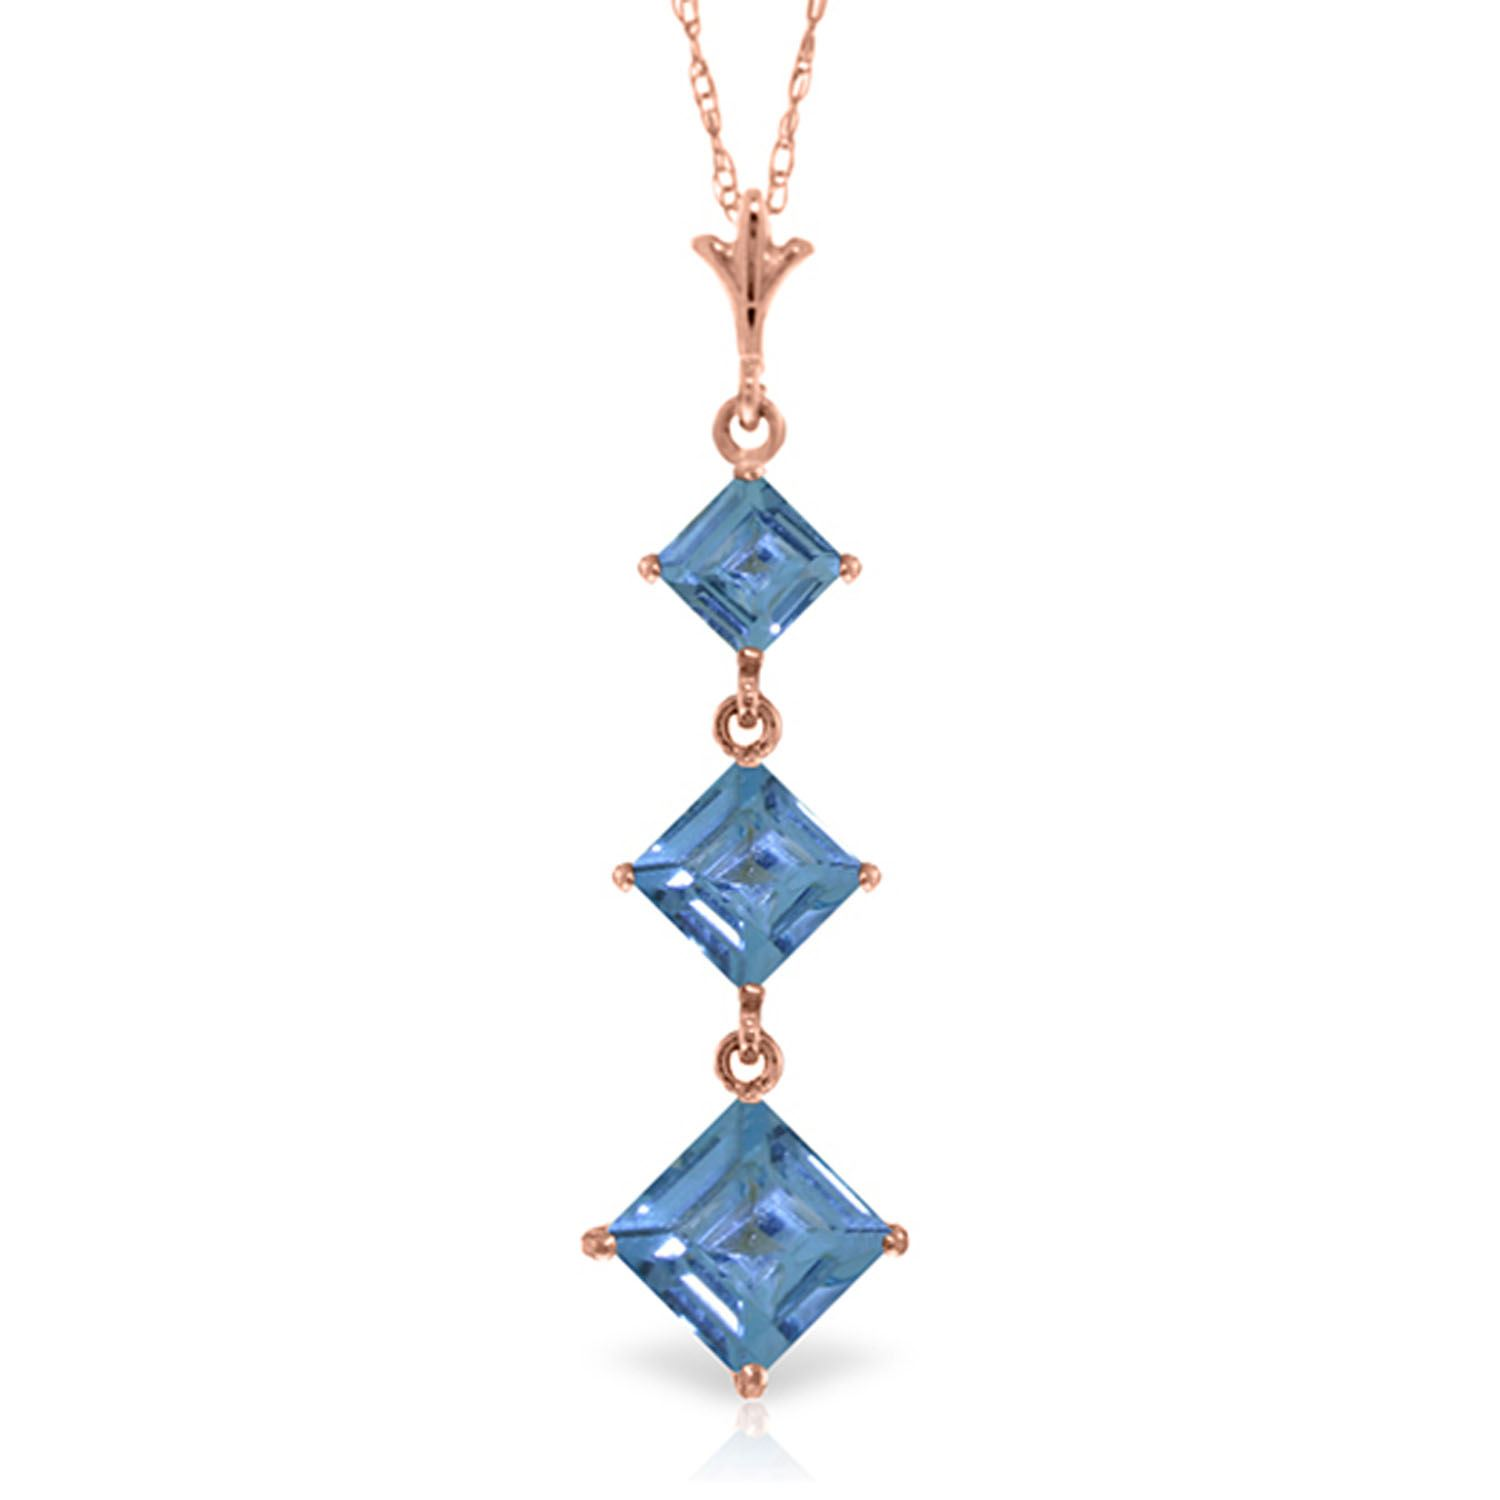 ALARRI 2.4 CTW 14K Solid Rose Gold Waterdrops Blue Topaz Necklace with 24 Inch Chain Length